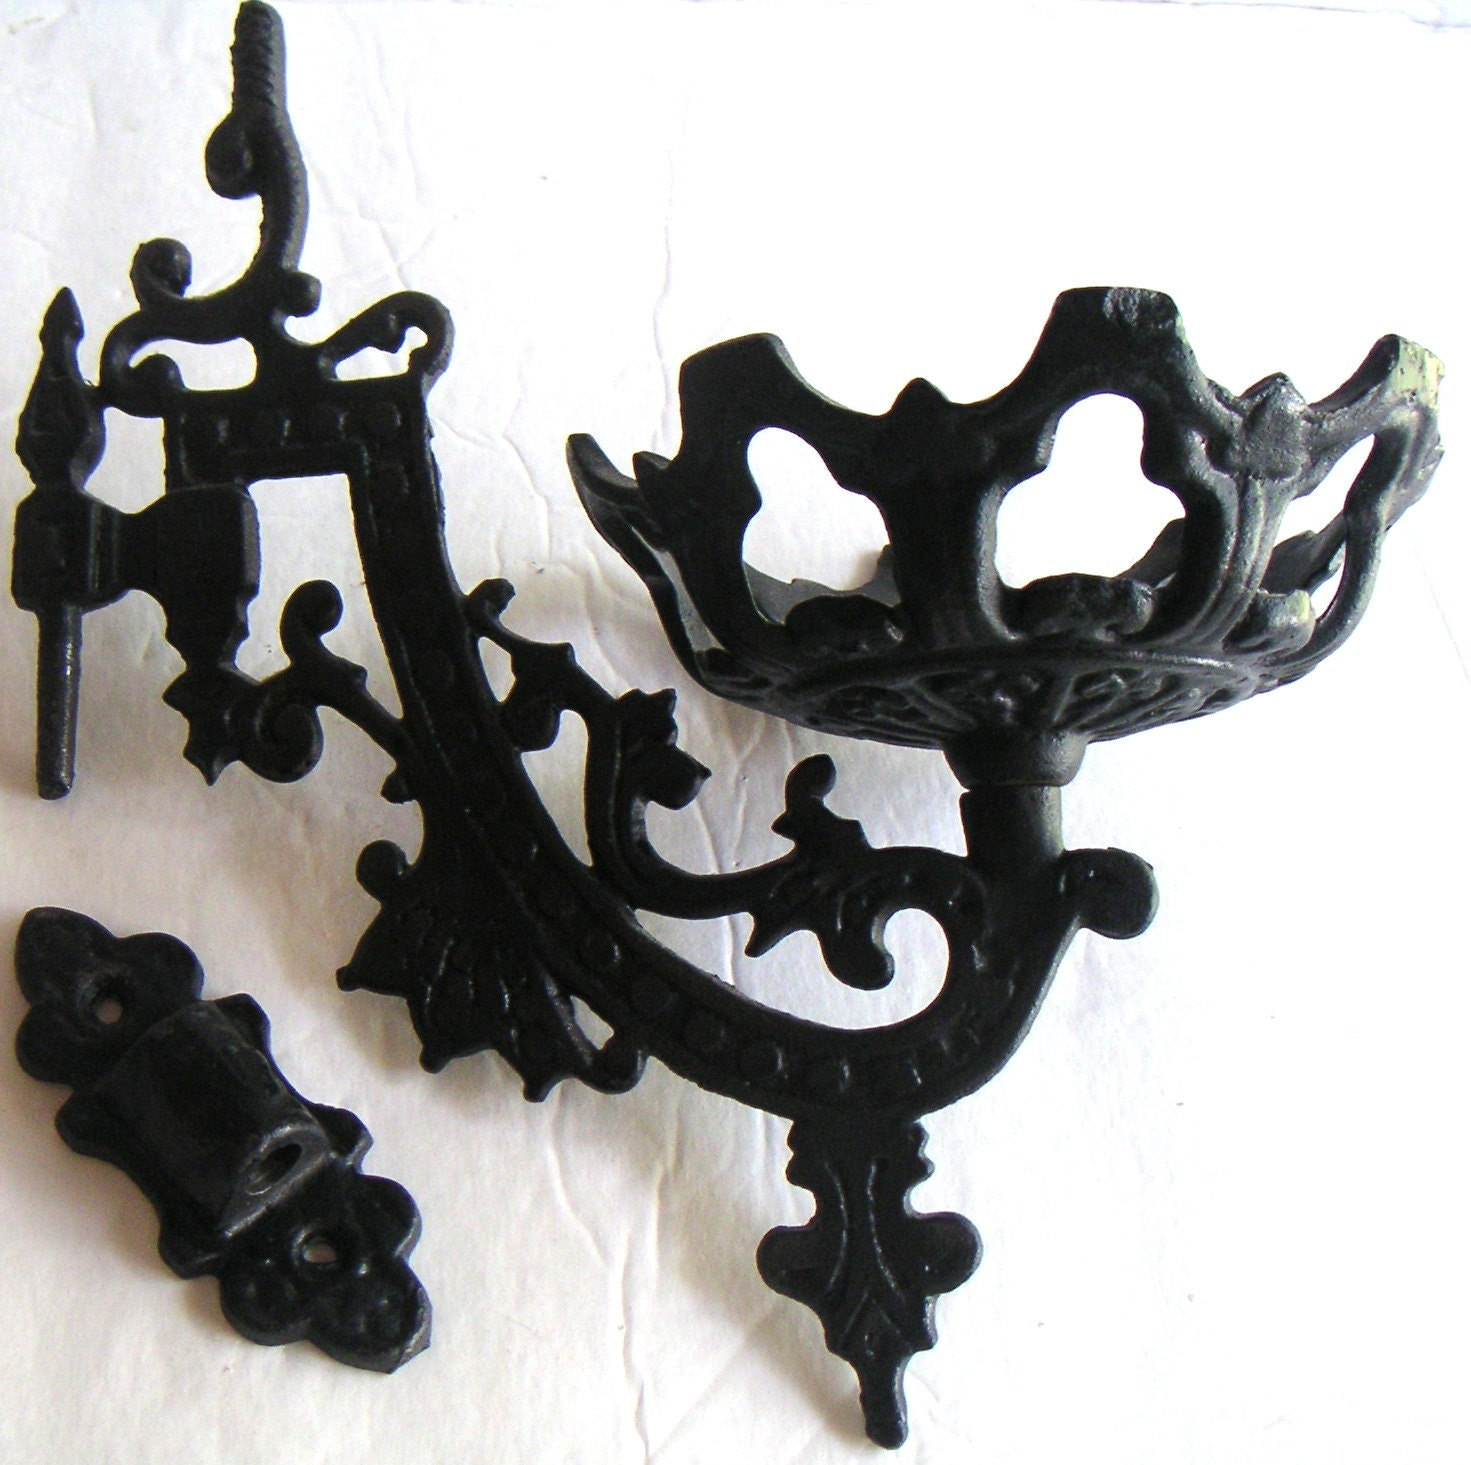 Iron Candle Holder Wall Sconce : Vintage Cast Iron Wall Sconce for Oil Kerosene Lamp/Candle